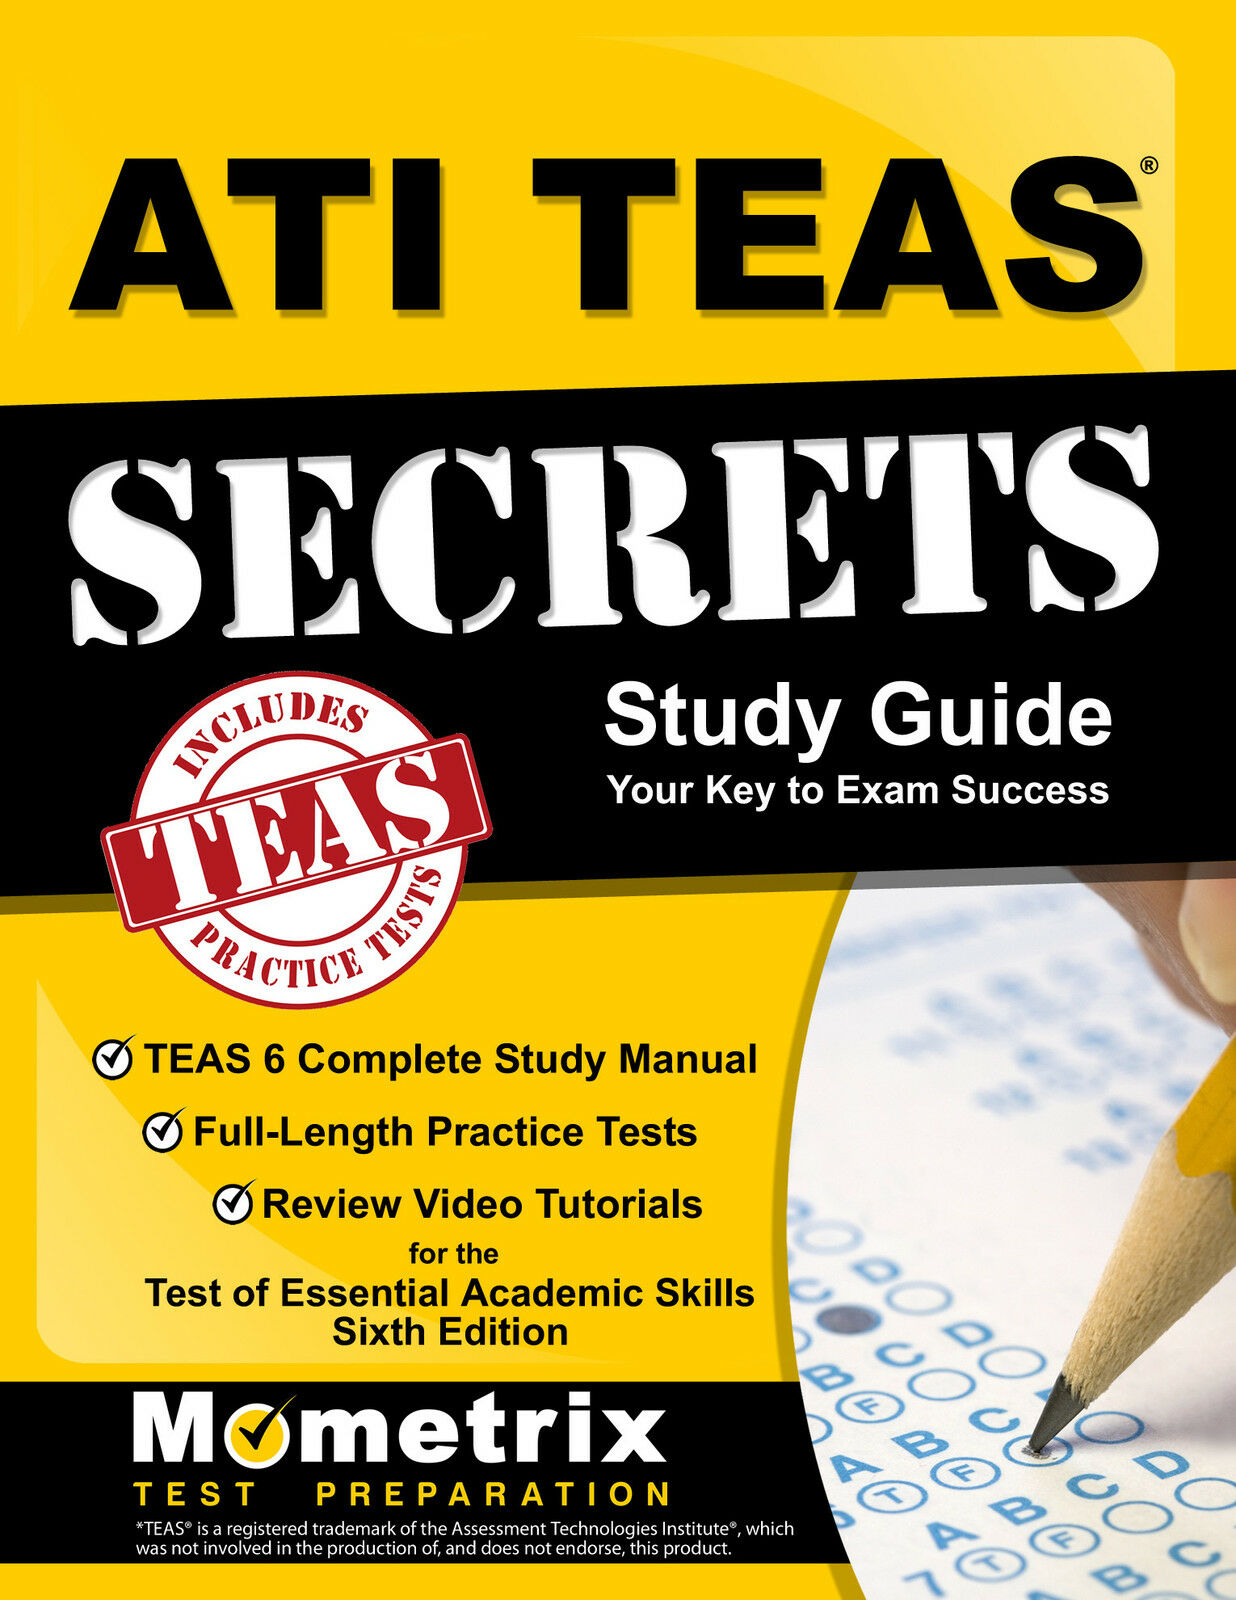 Ati books ebay ati teas secrets study guide fandeluxe Image collections